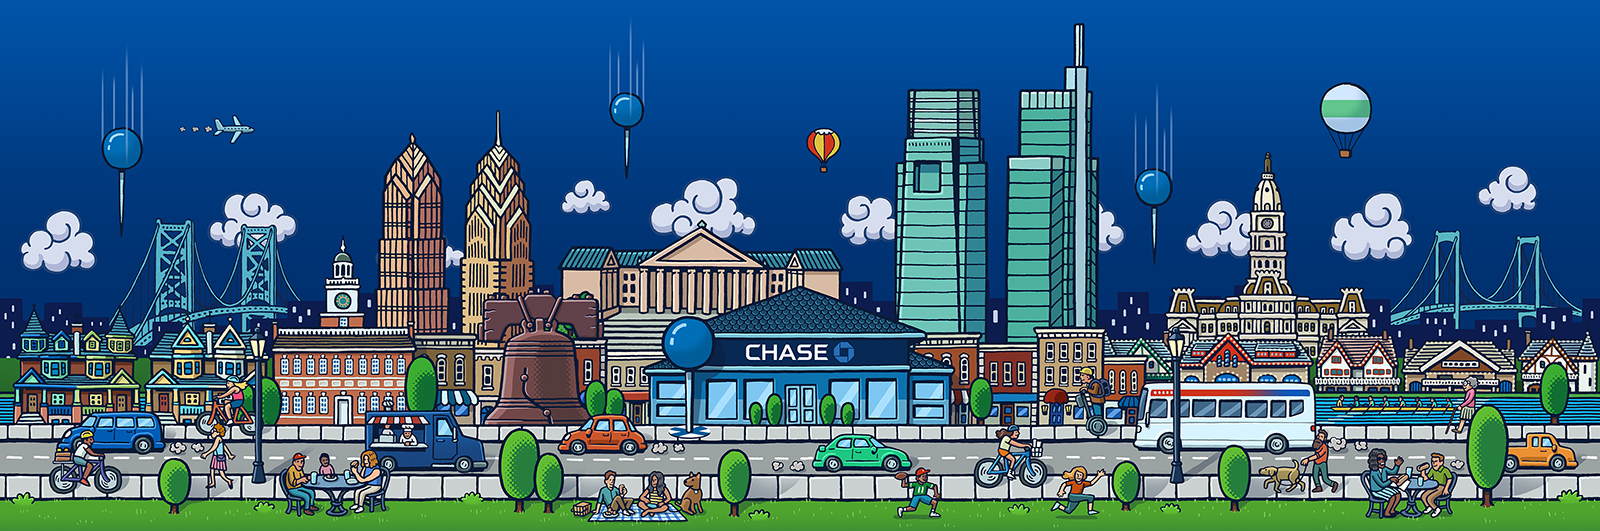 chase_philly_environmental_graphics.jpg